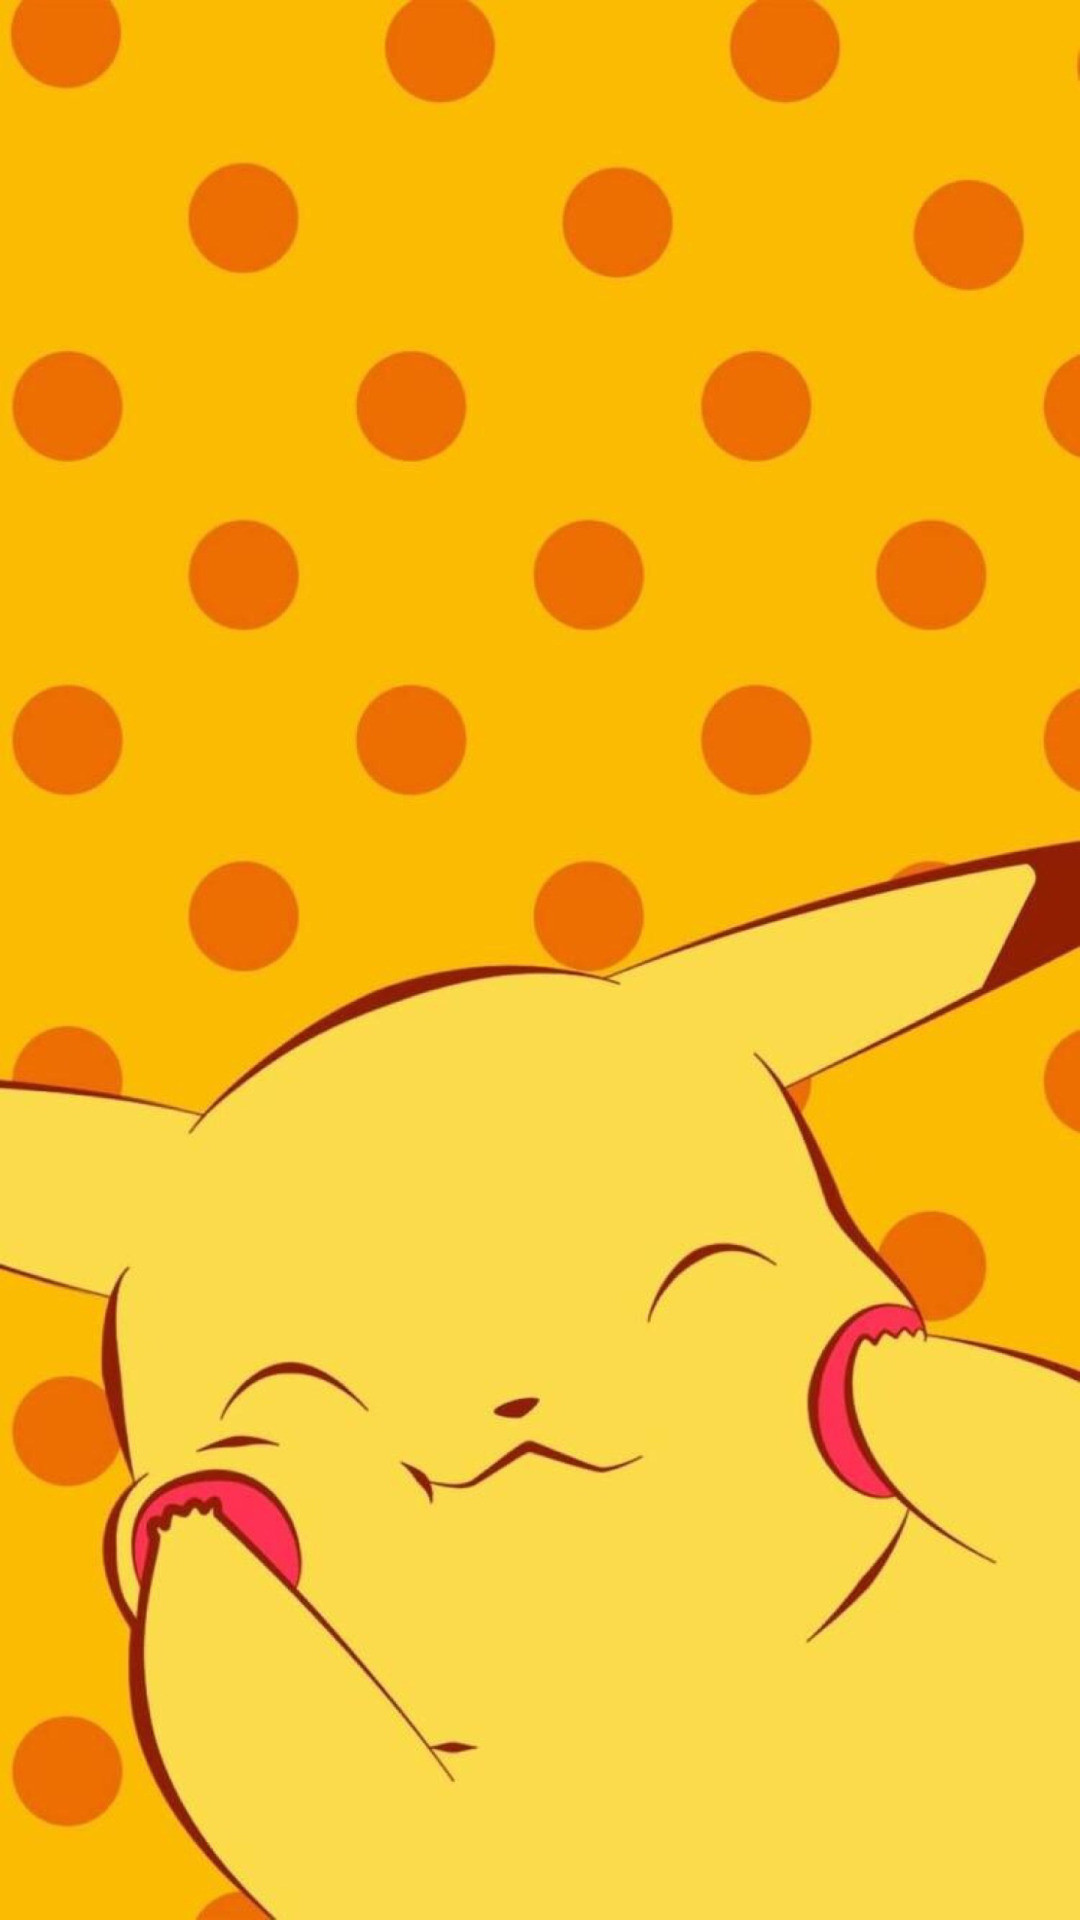 1080x1920 Pokemon iPhone Wallpaper Images Download.